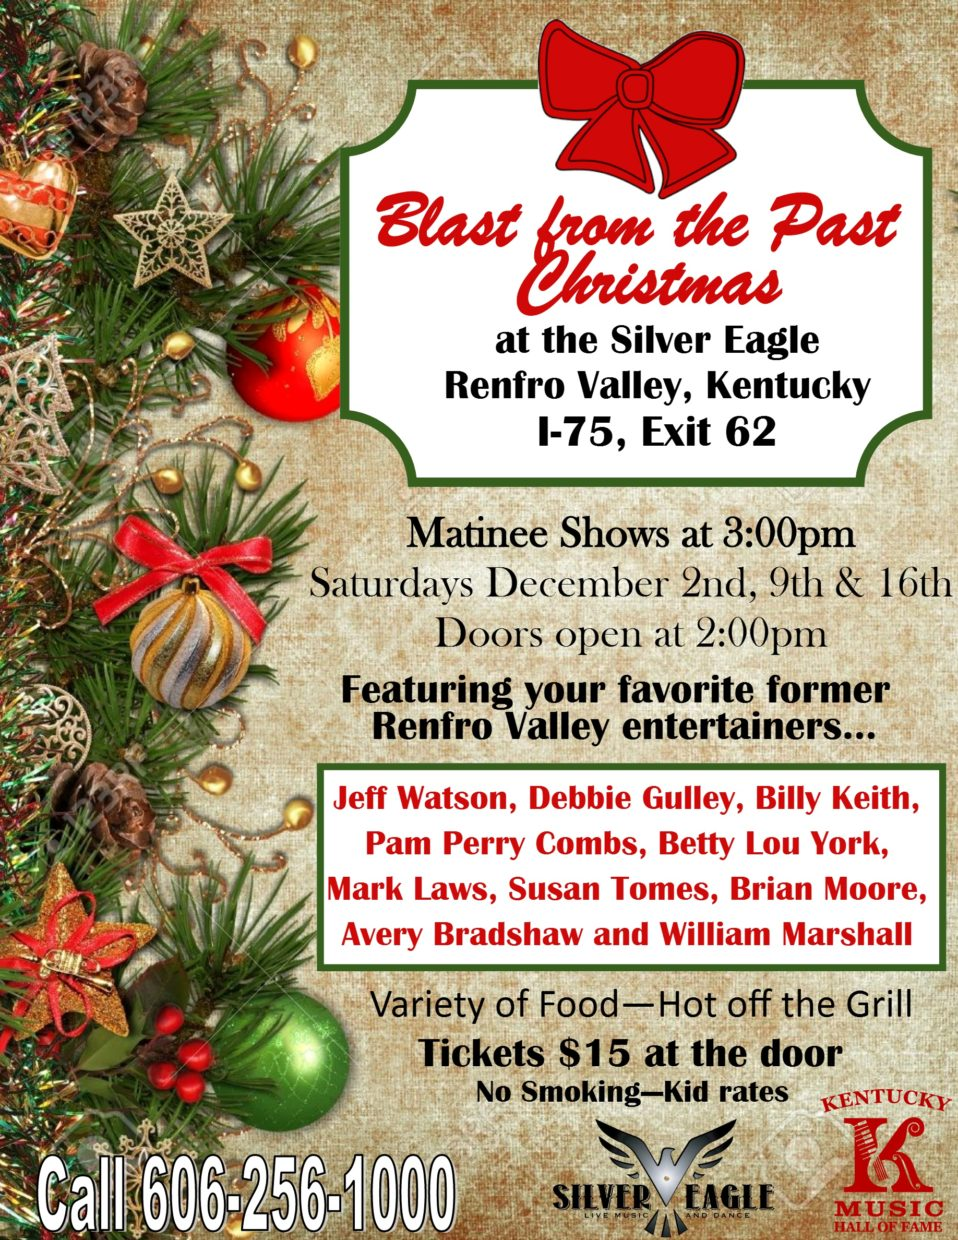 Blast From the Past Christmas Show – Kentucky Music Hall of Fame